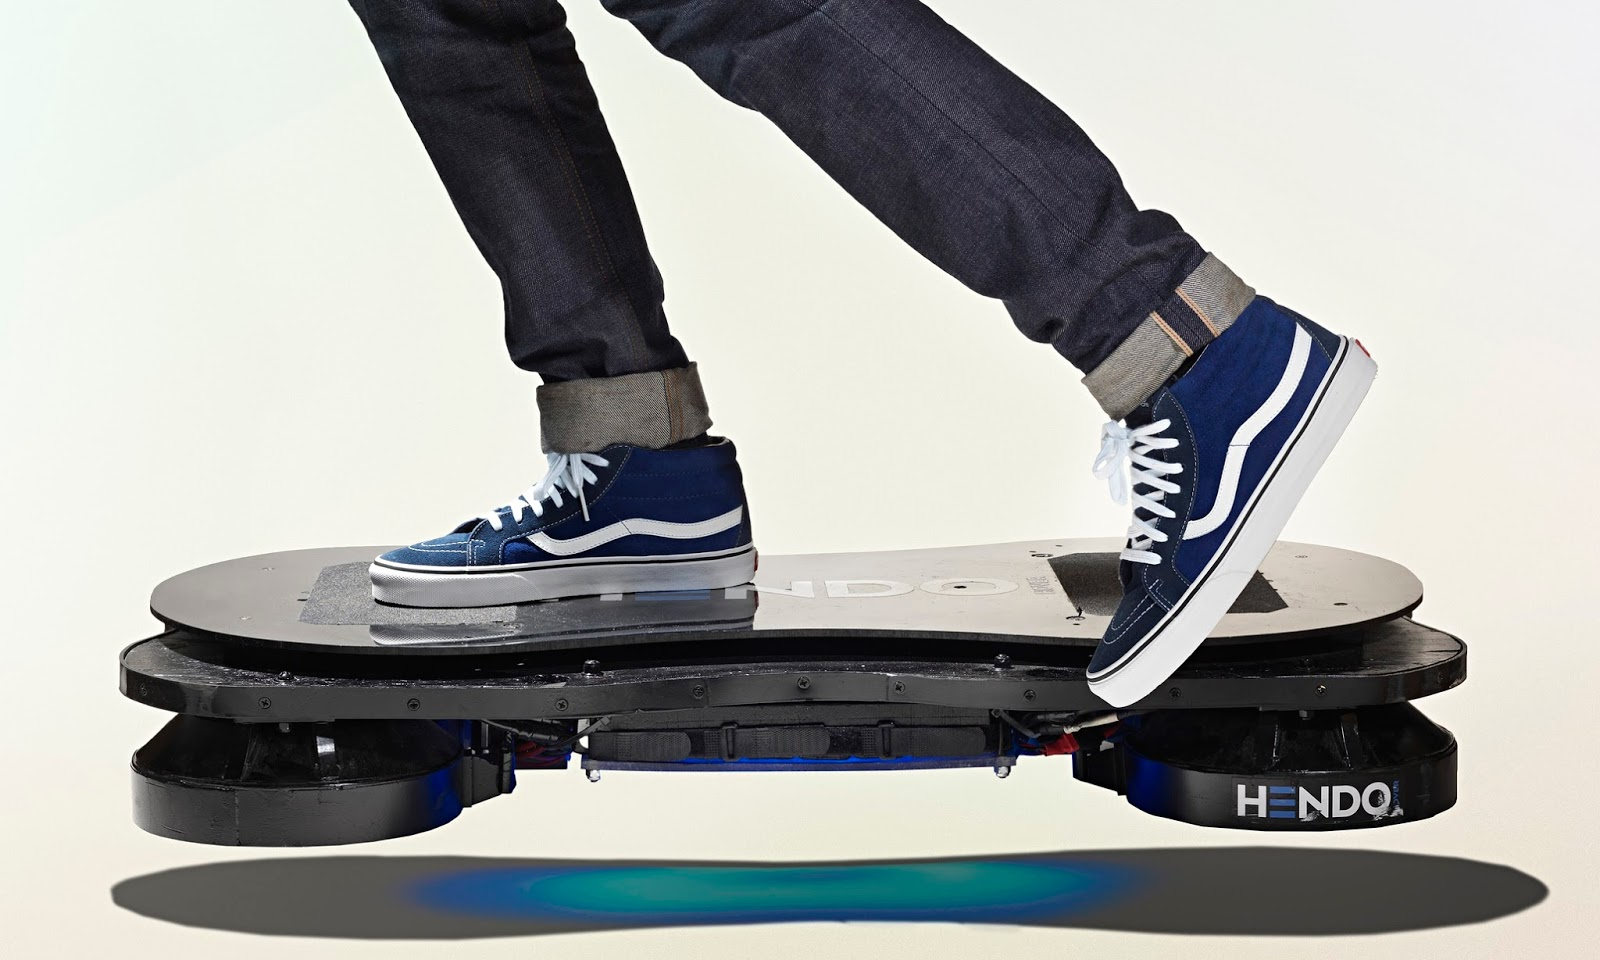 Real Working Hoverboard Hendo Hoverboard